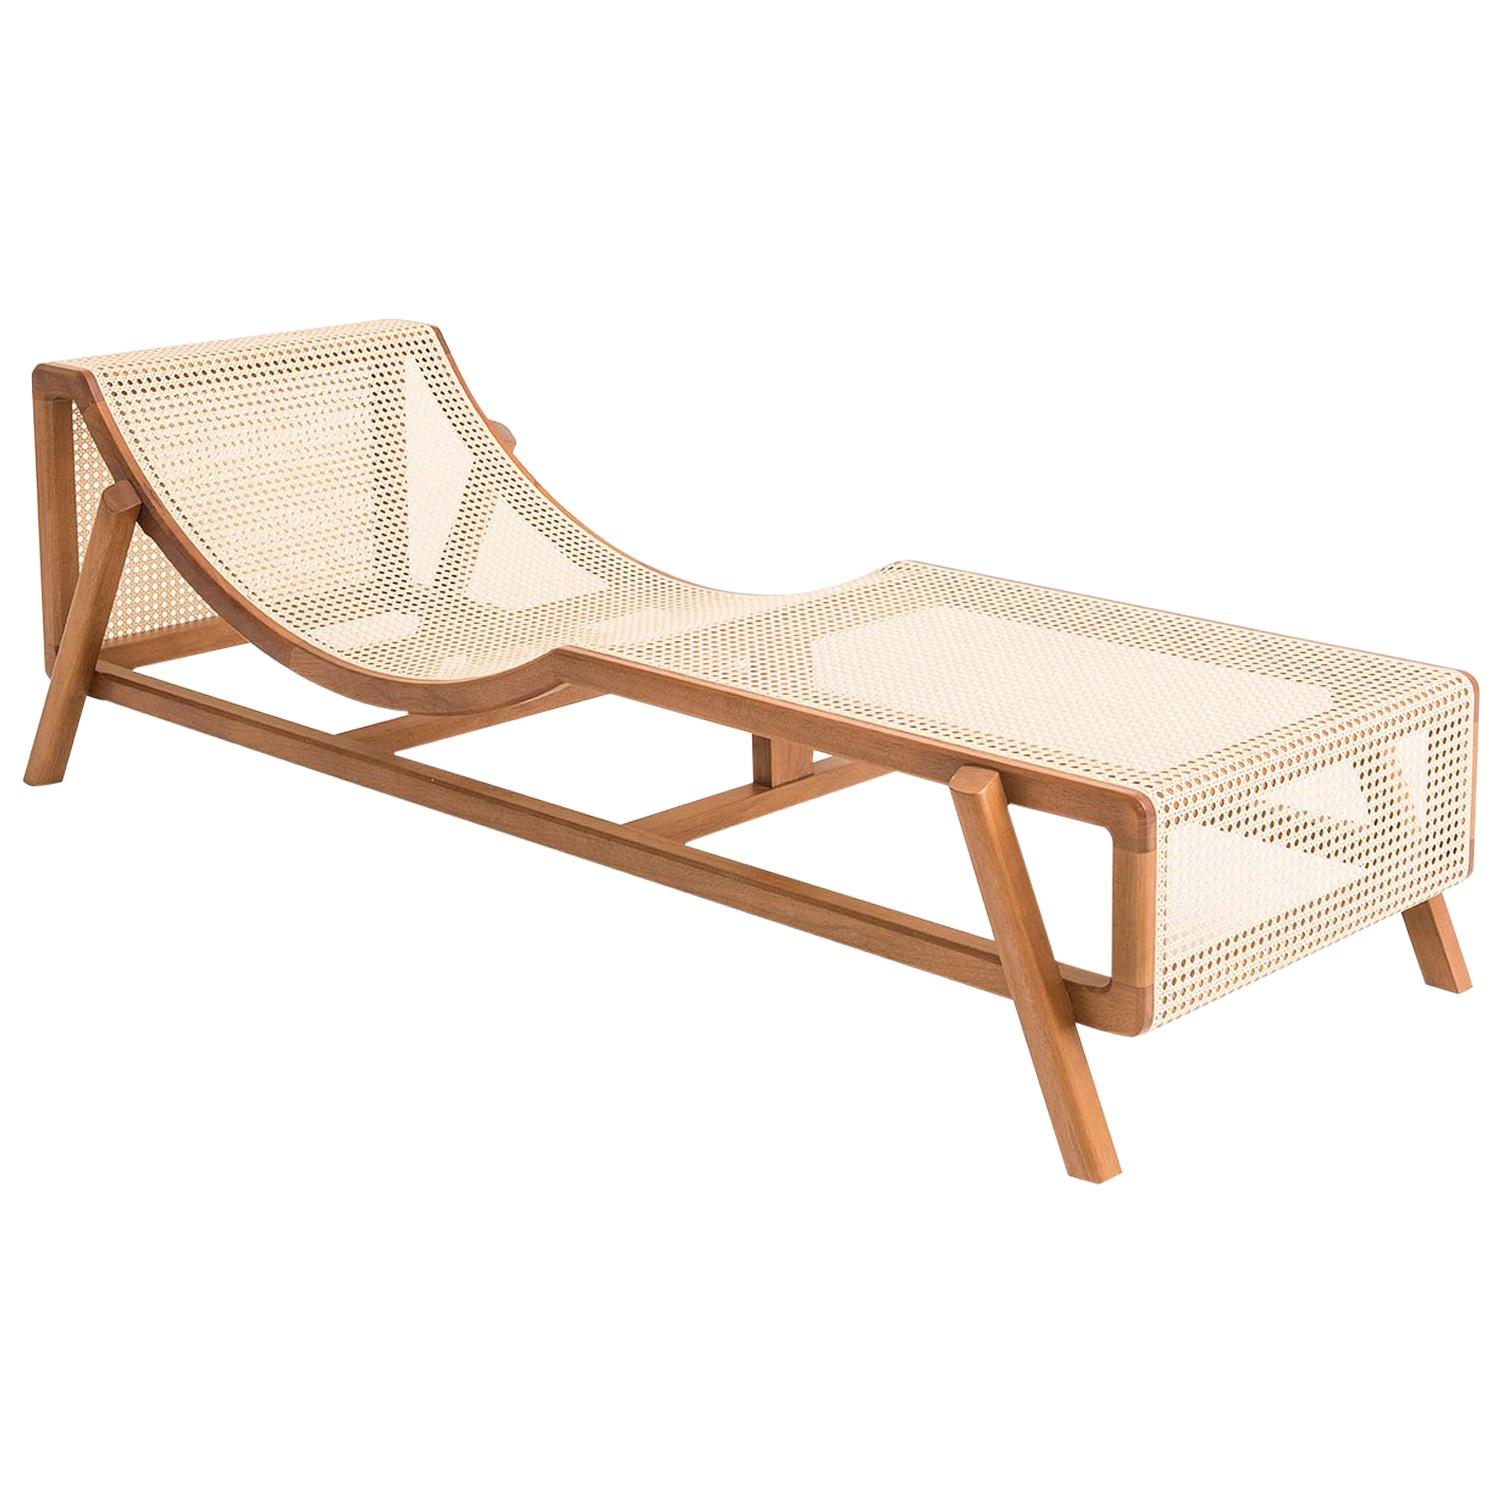 Sofa Jequitiba Nova America Contemporary Rope And Wood Chaise Longue